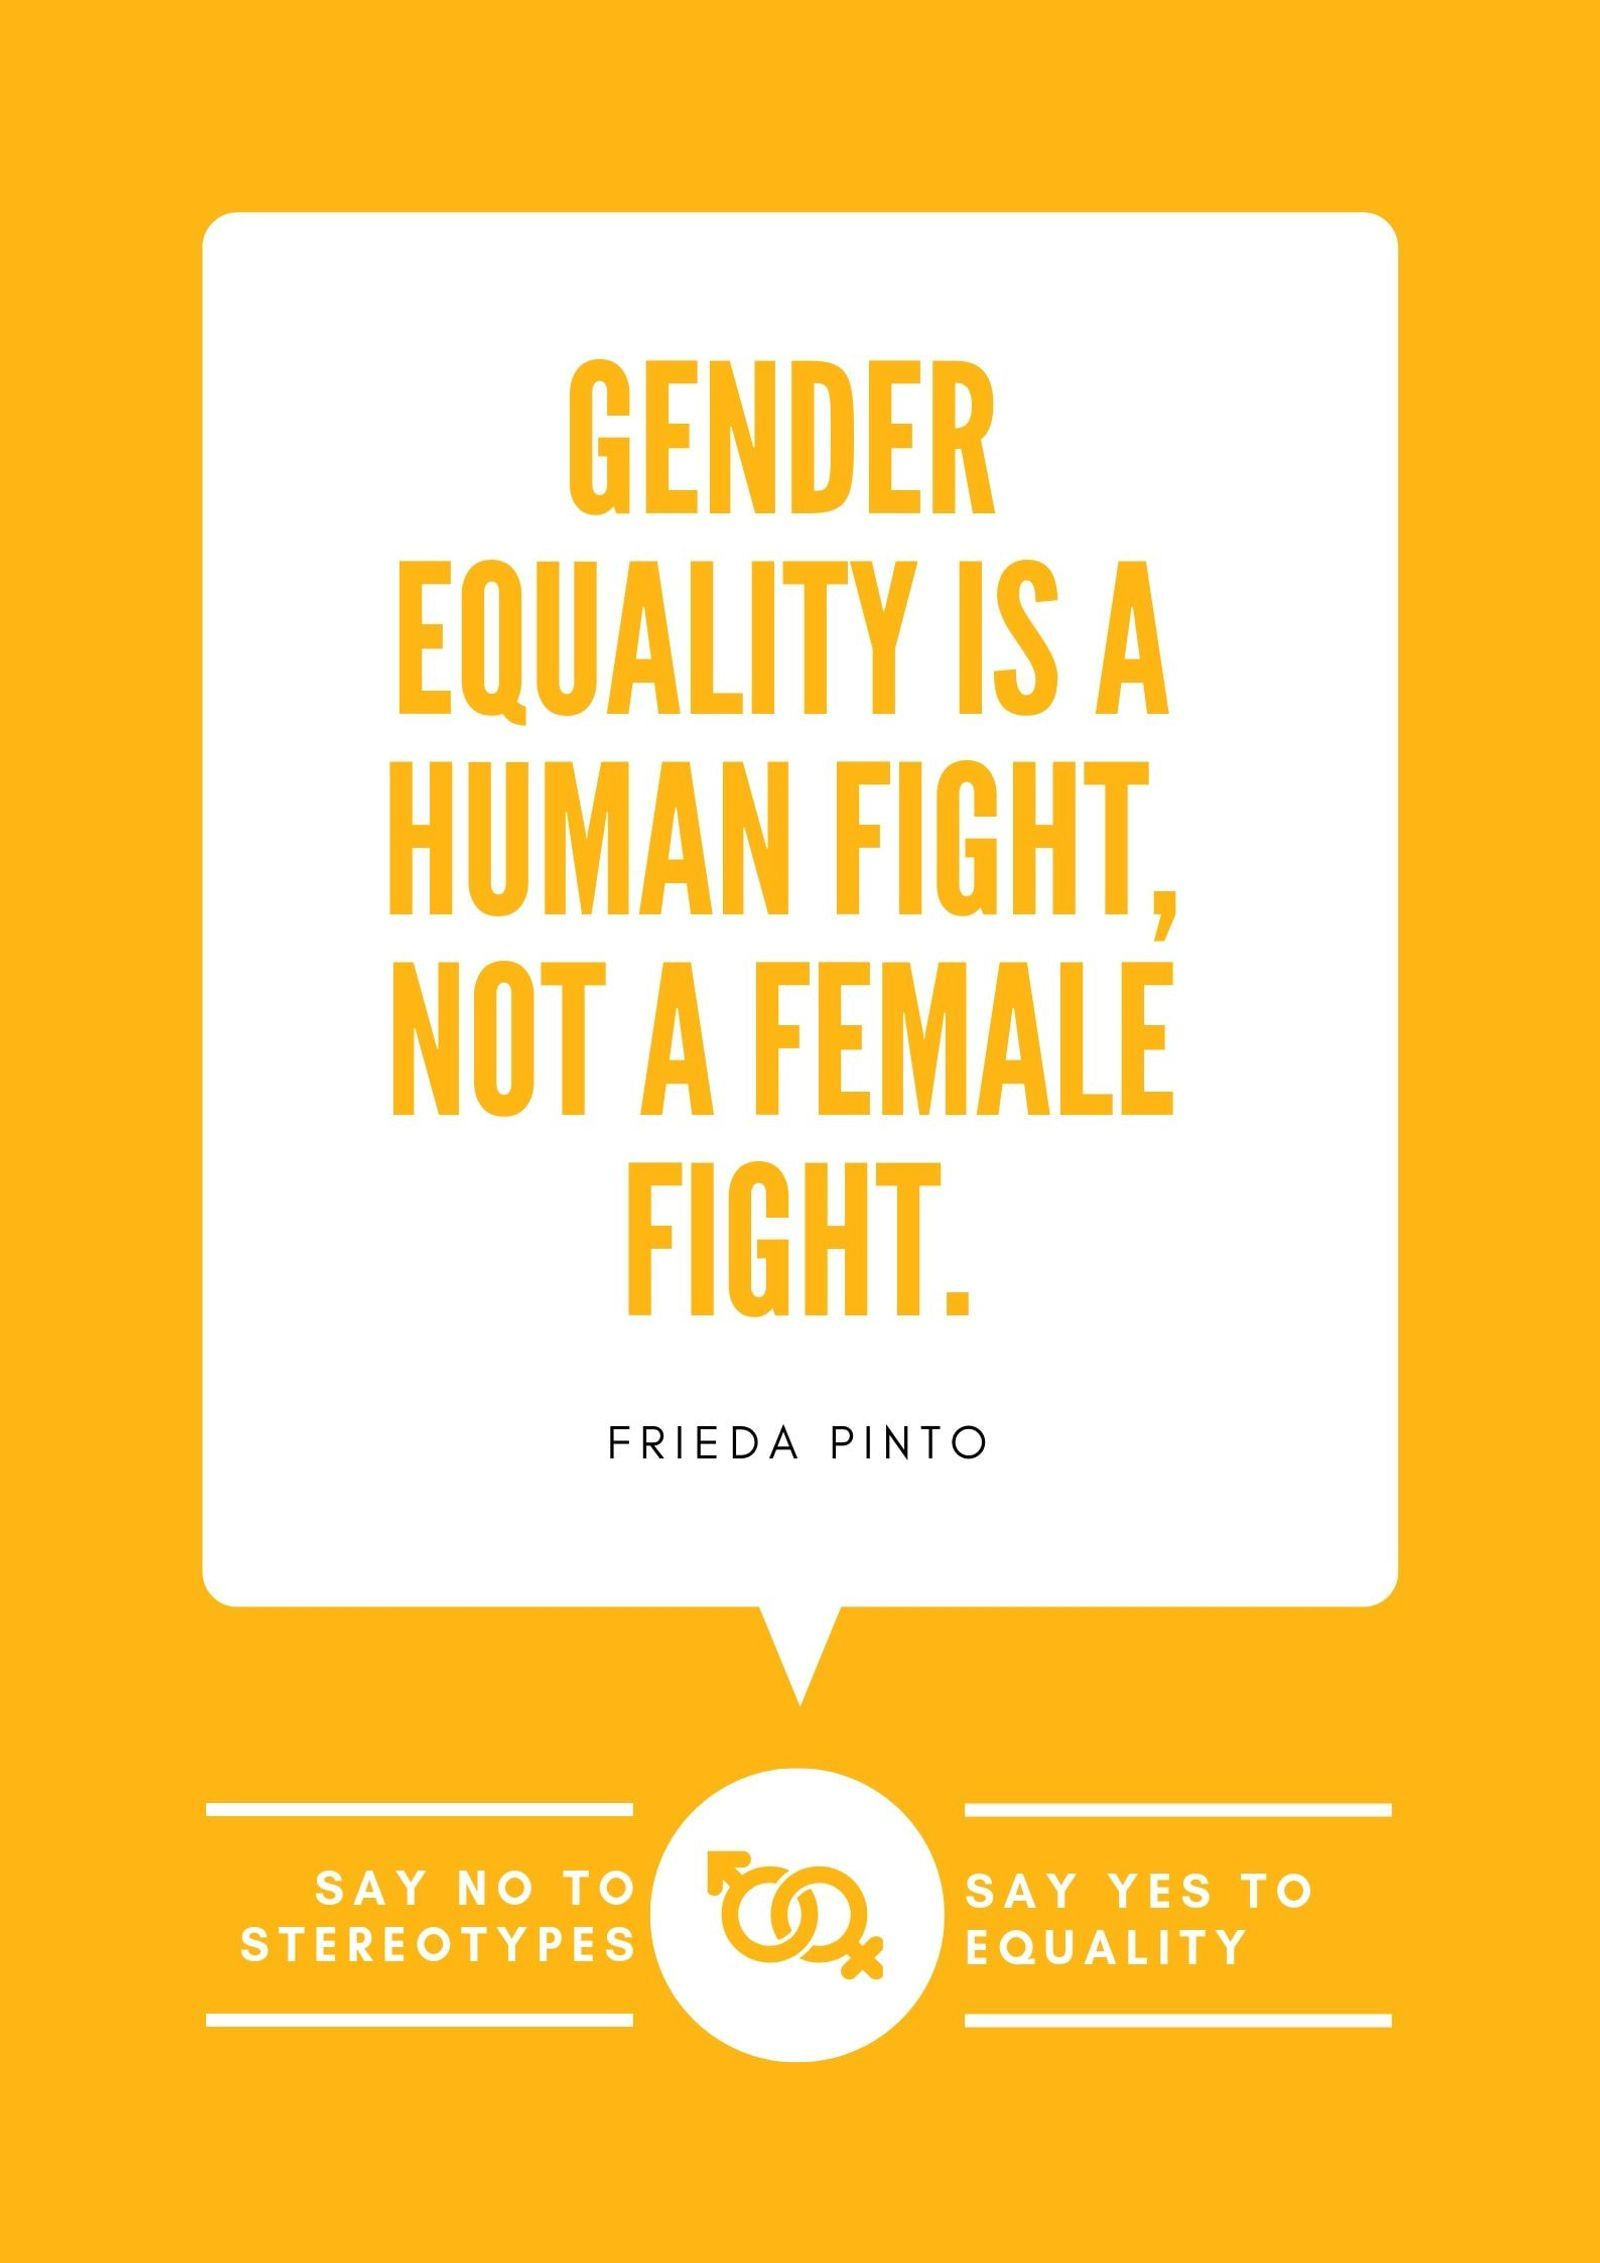 Orange Speech Bubble Gender Equality Quote Poster In 2020 Gender Equality Quotes Equality Quotes Gender Equality